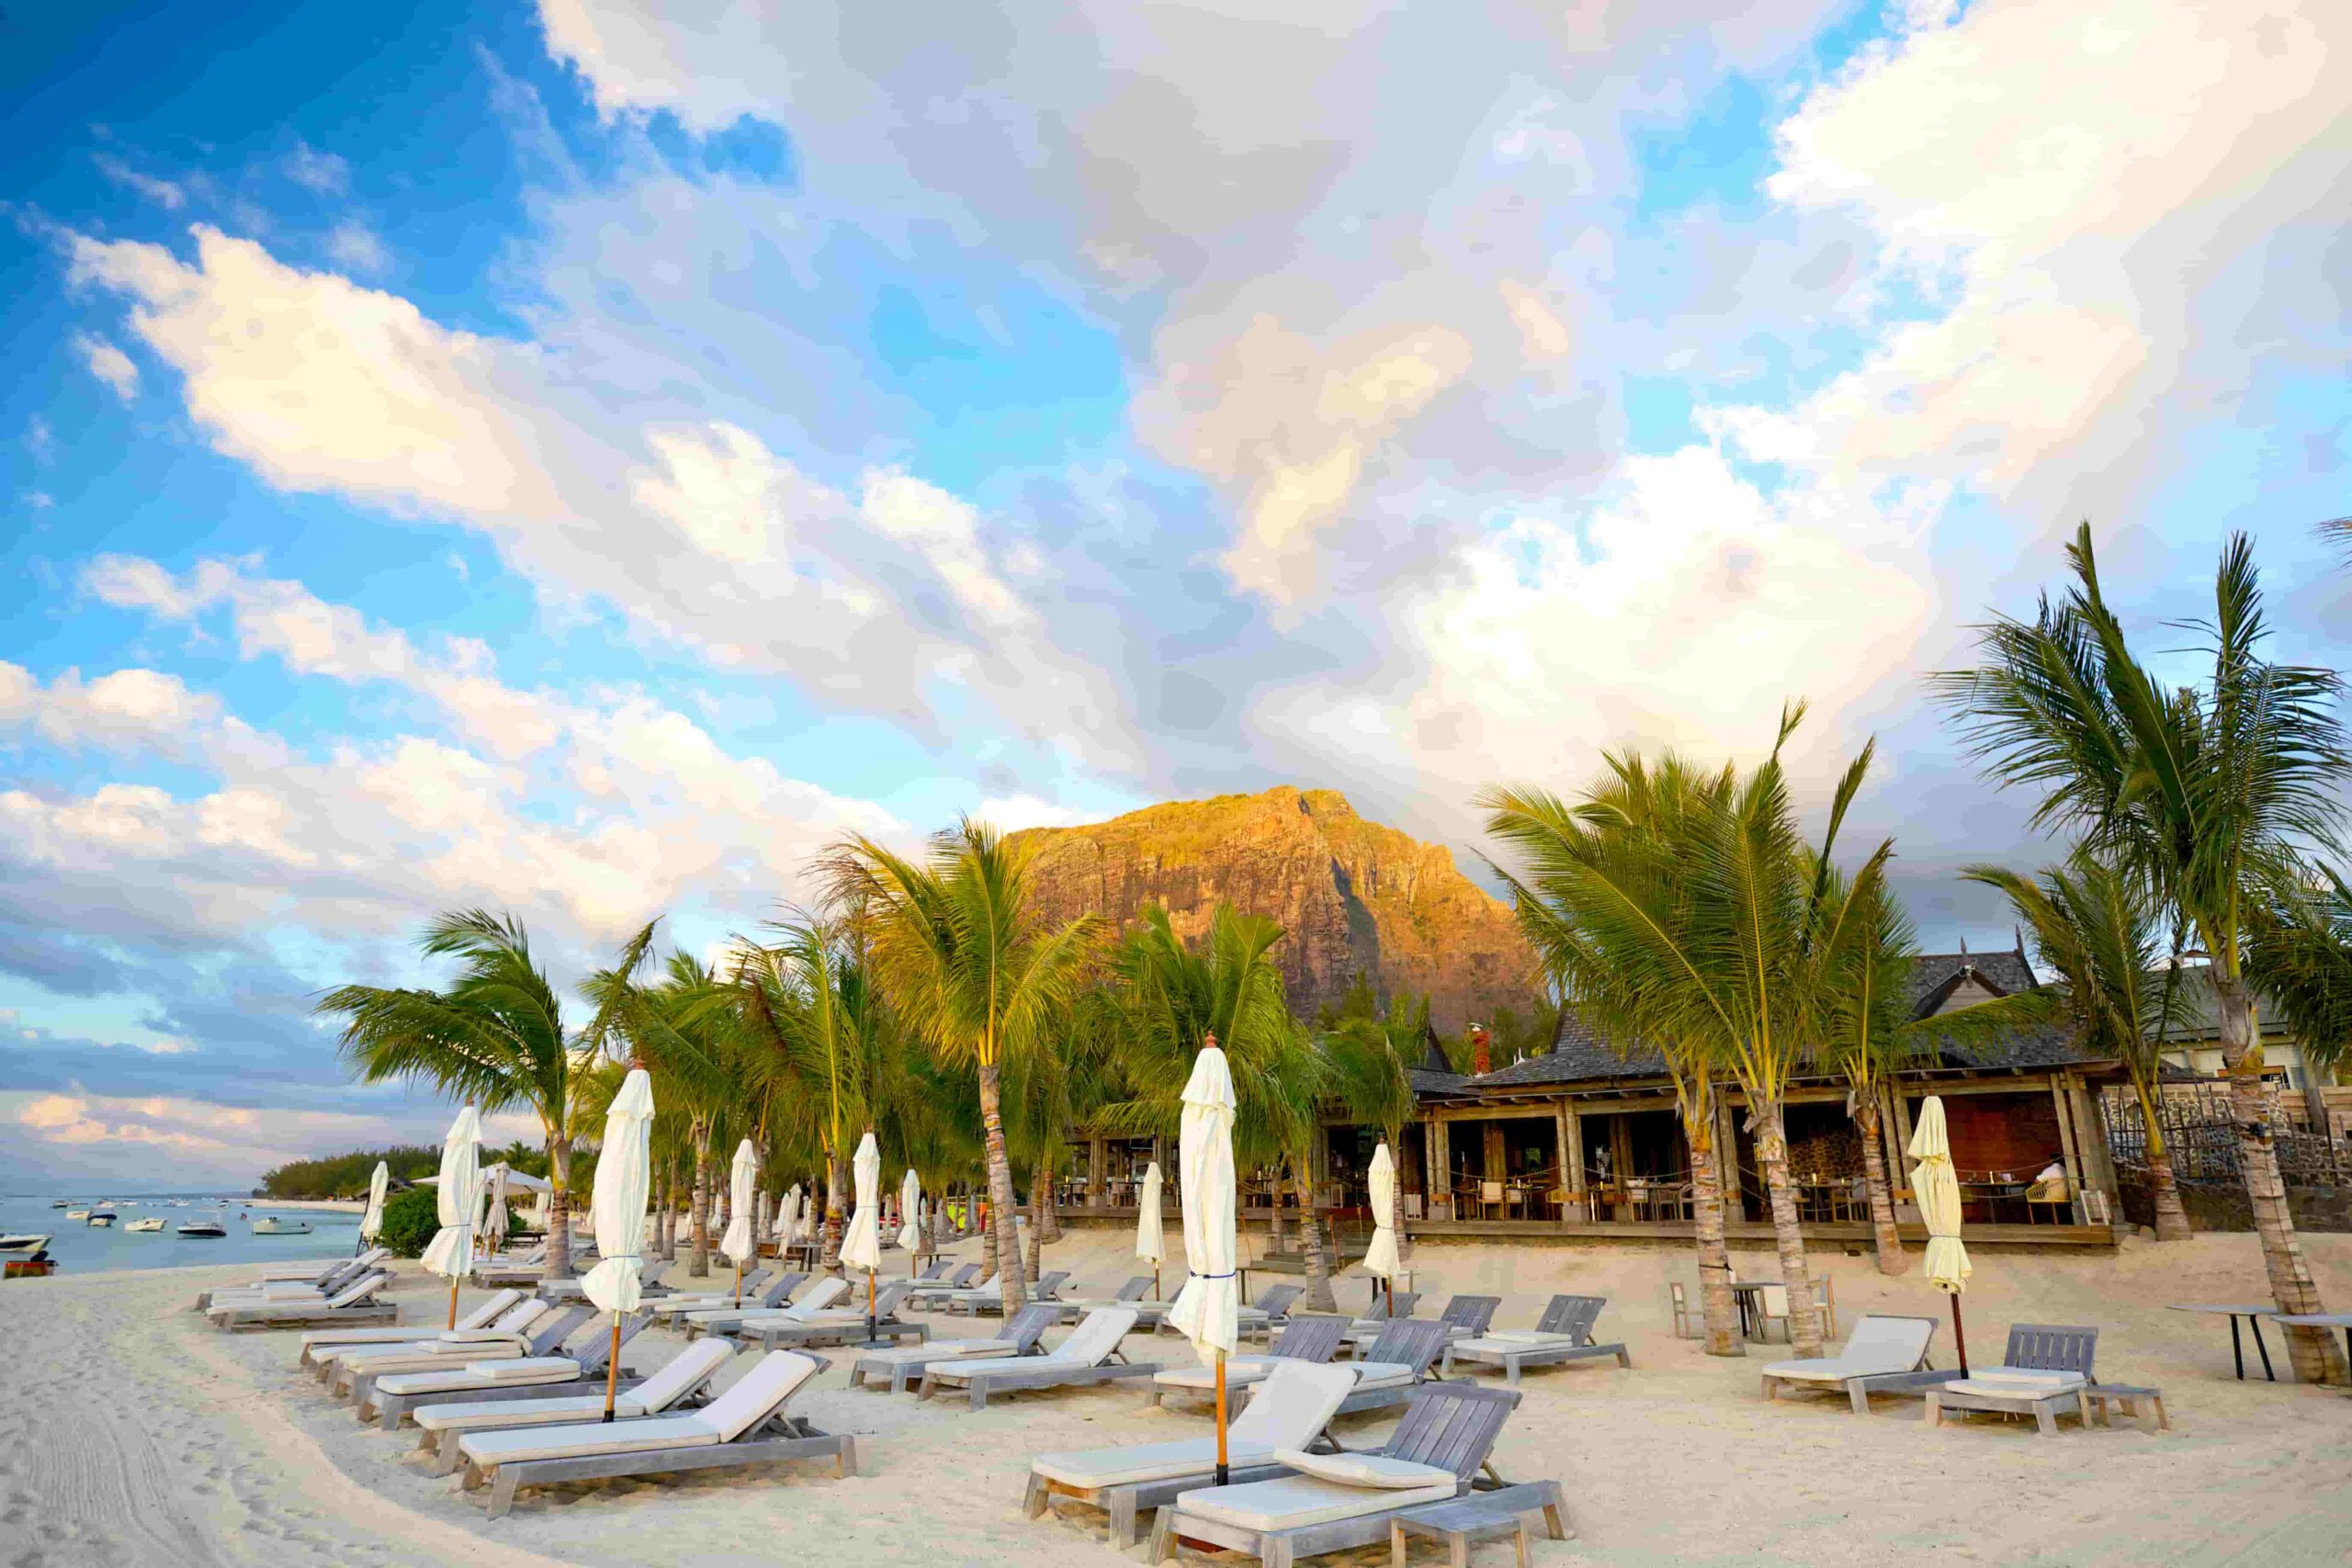 Sun loungers and umbrellas on beach in Mauritius